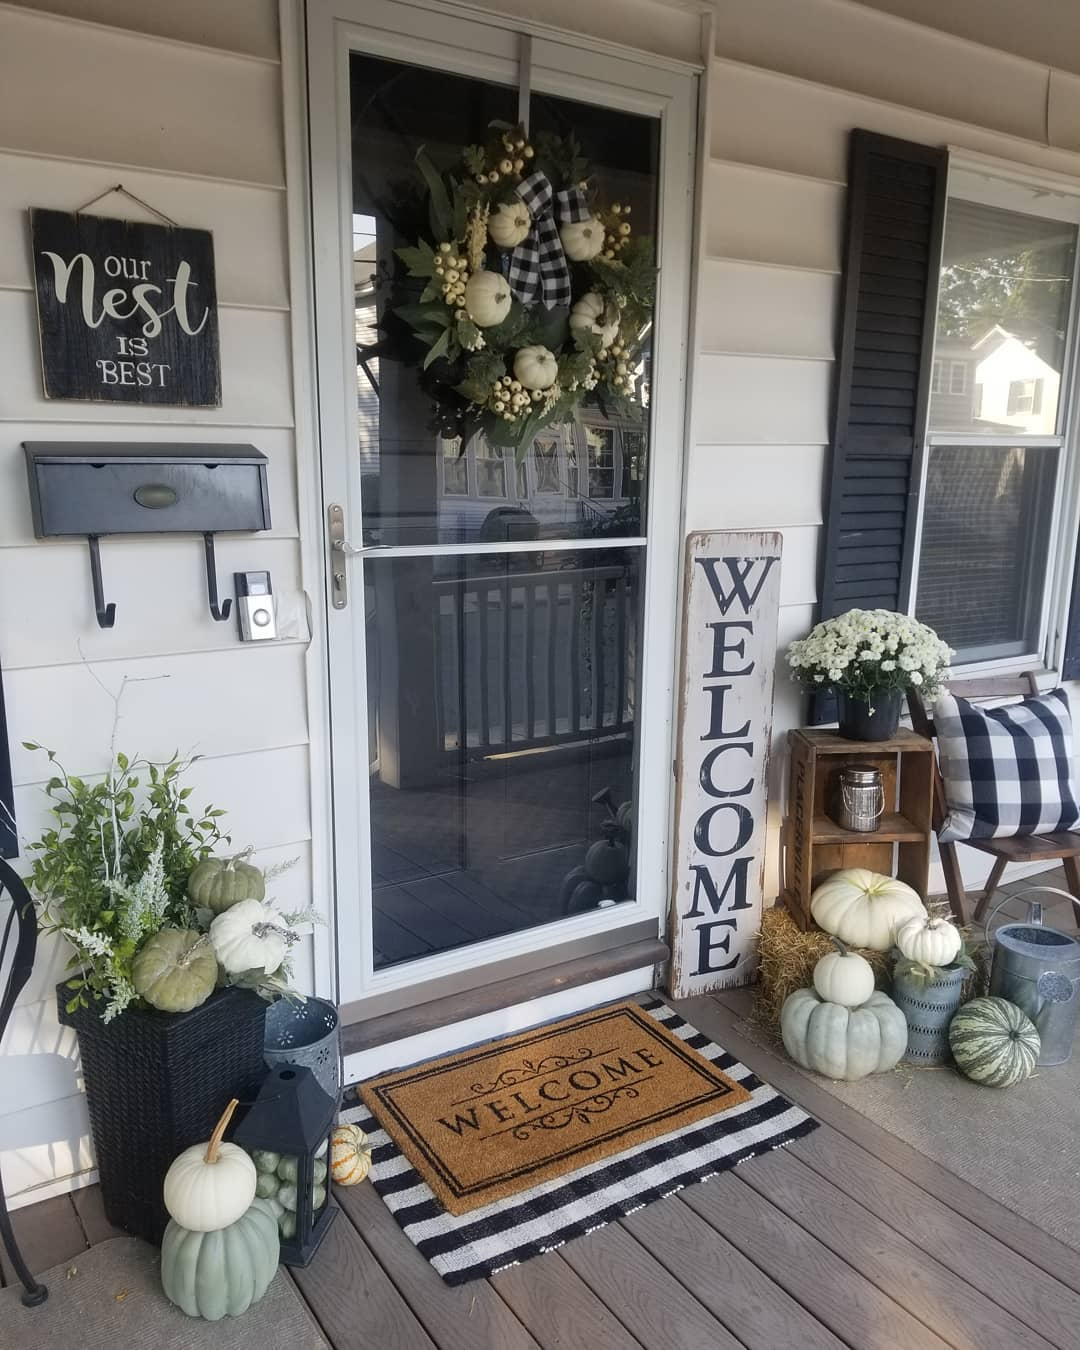 Add Some Whites and Greens to Your Fall Porch Decor